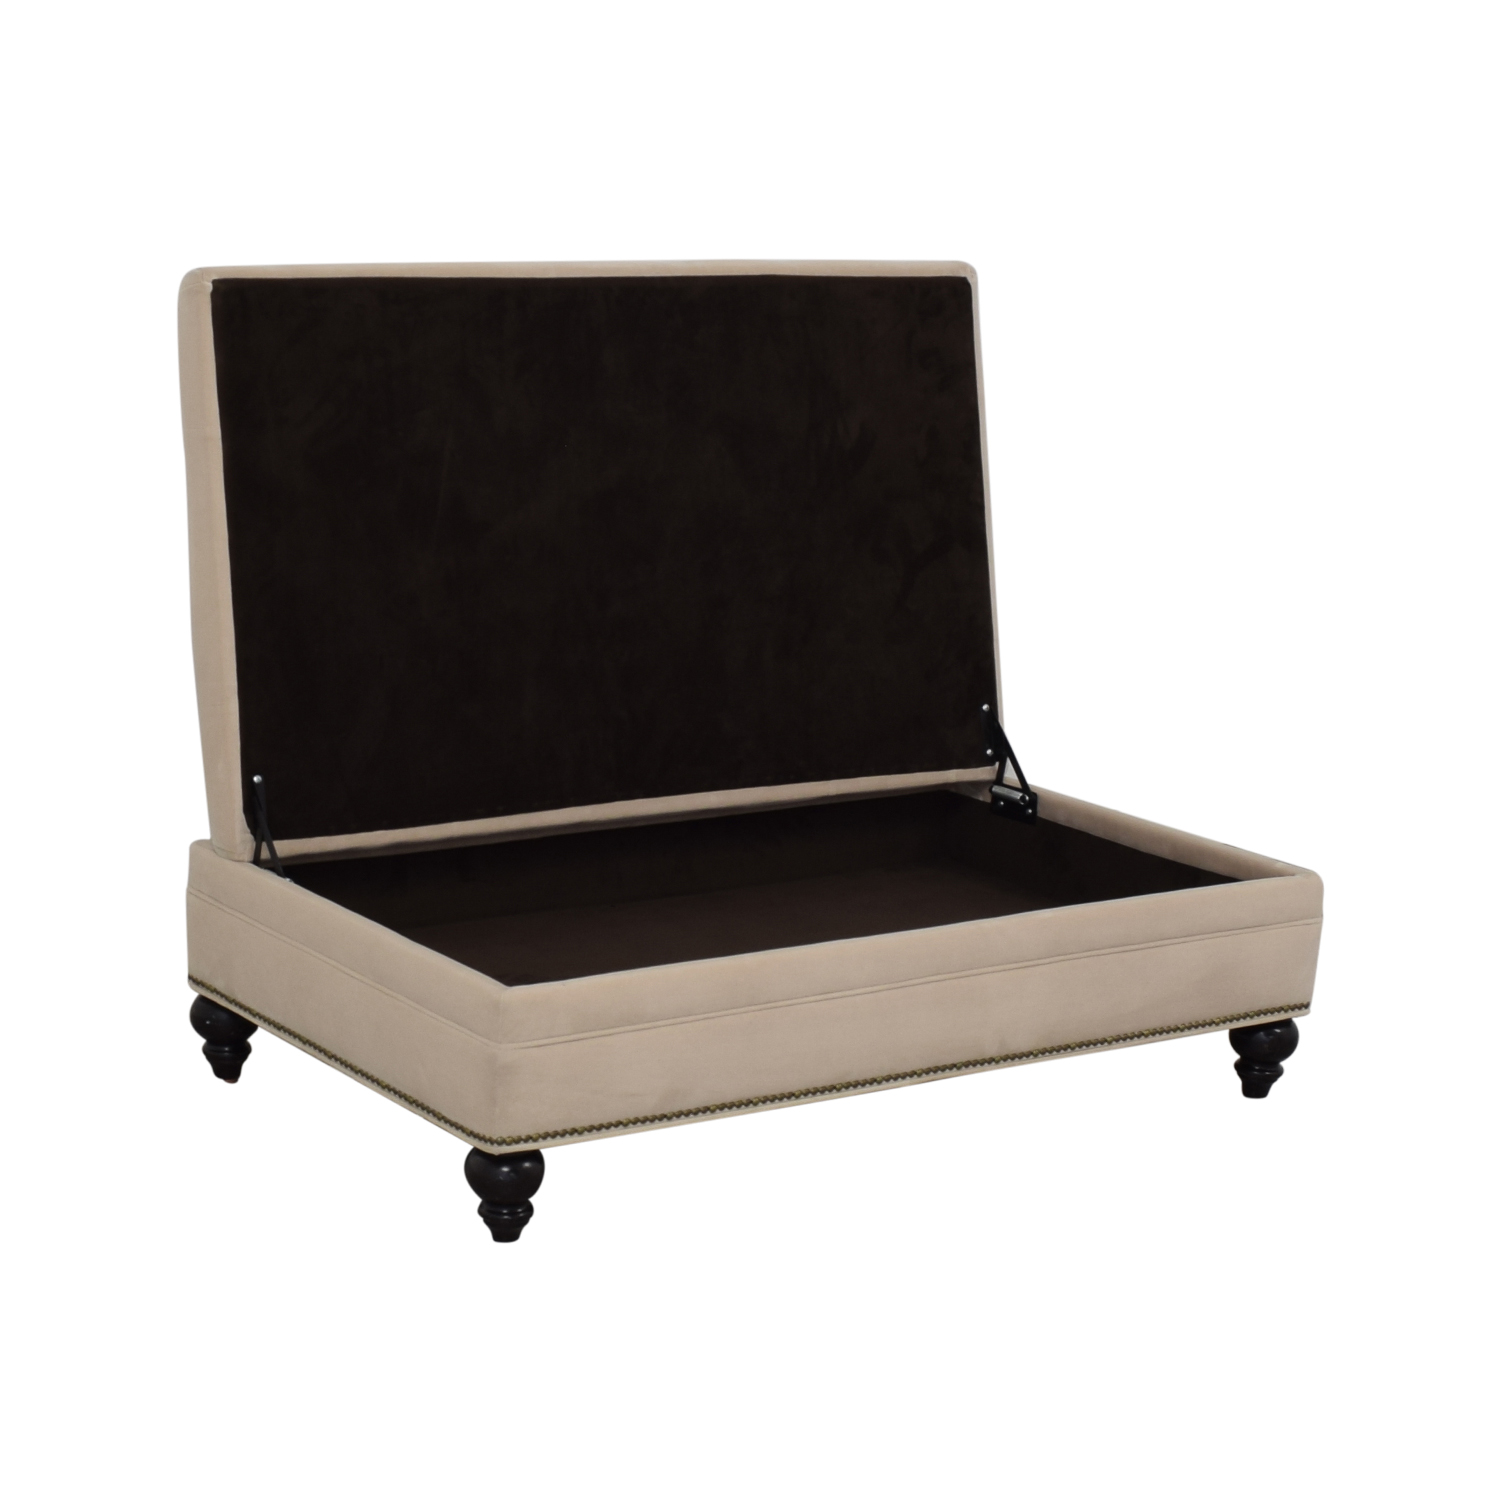 Jonathan Louis Jonathan Louis Tufted Storage Ottoman coupon